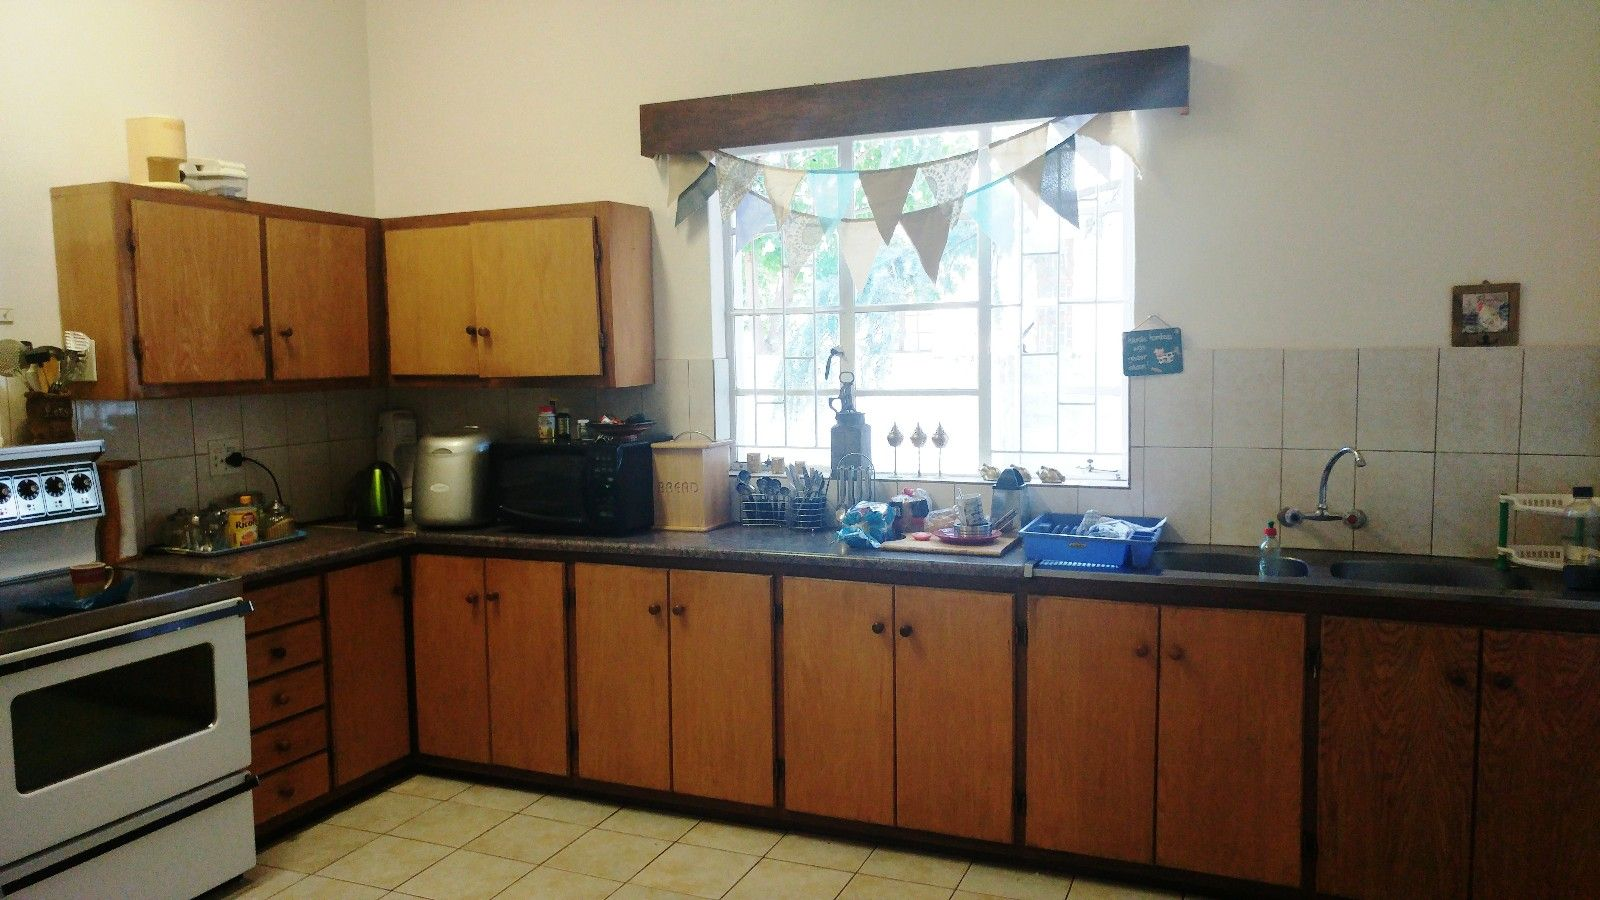 Potchefstroom Central property for sale. Ref No: 13460775. Picture no 9